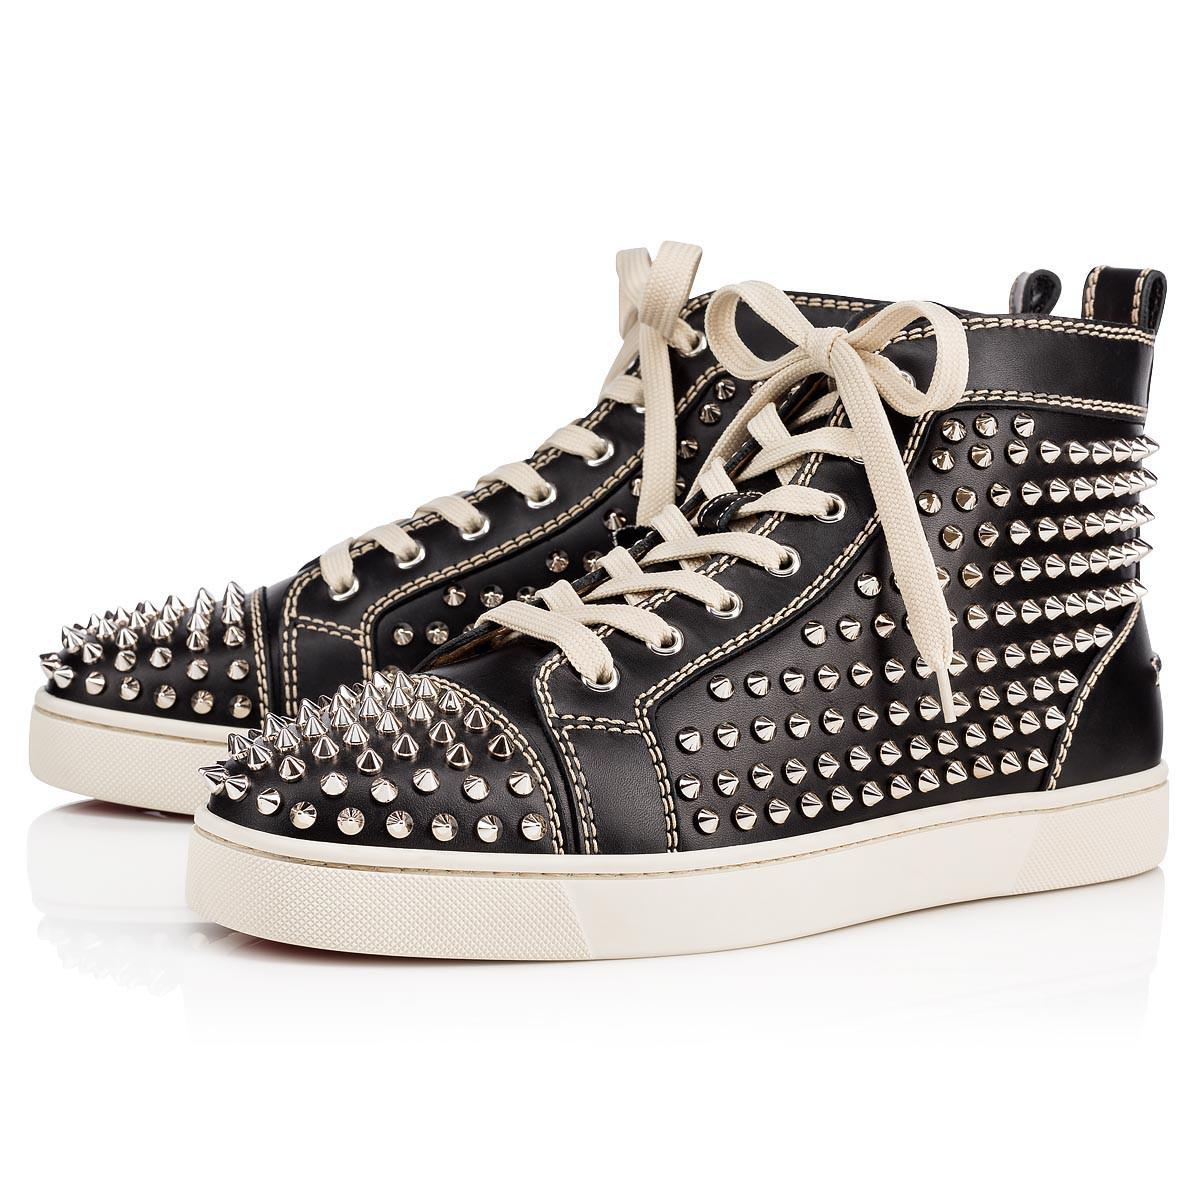 d4ae0ee4c7e Christian Louboutin Louis Calf spikes Black silver Leather in Black ...